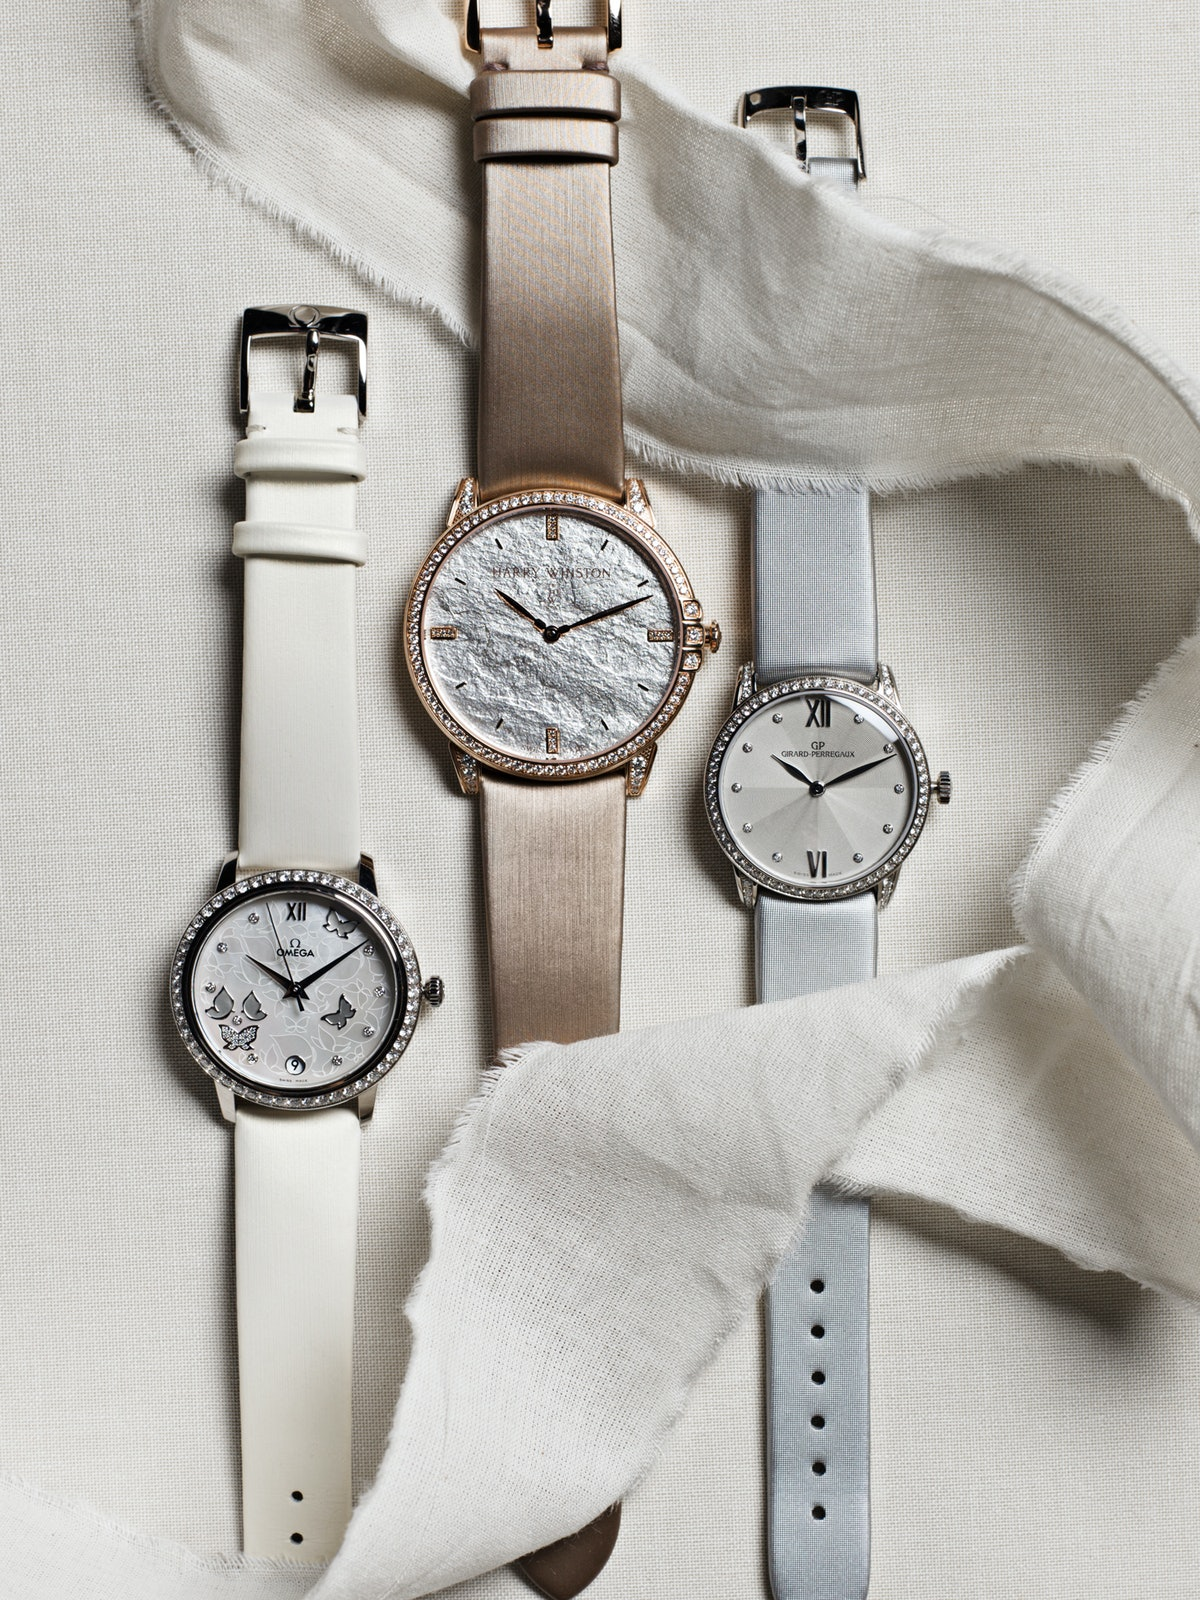 Omega gold, mother-of-pearl, and diamond watch